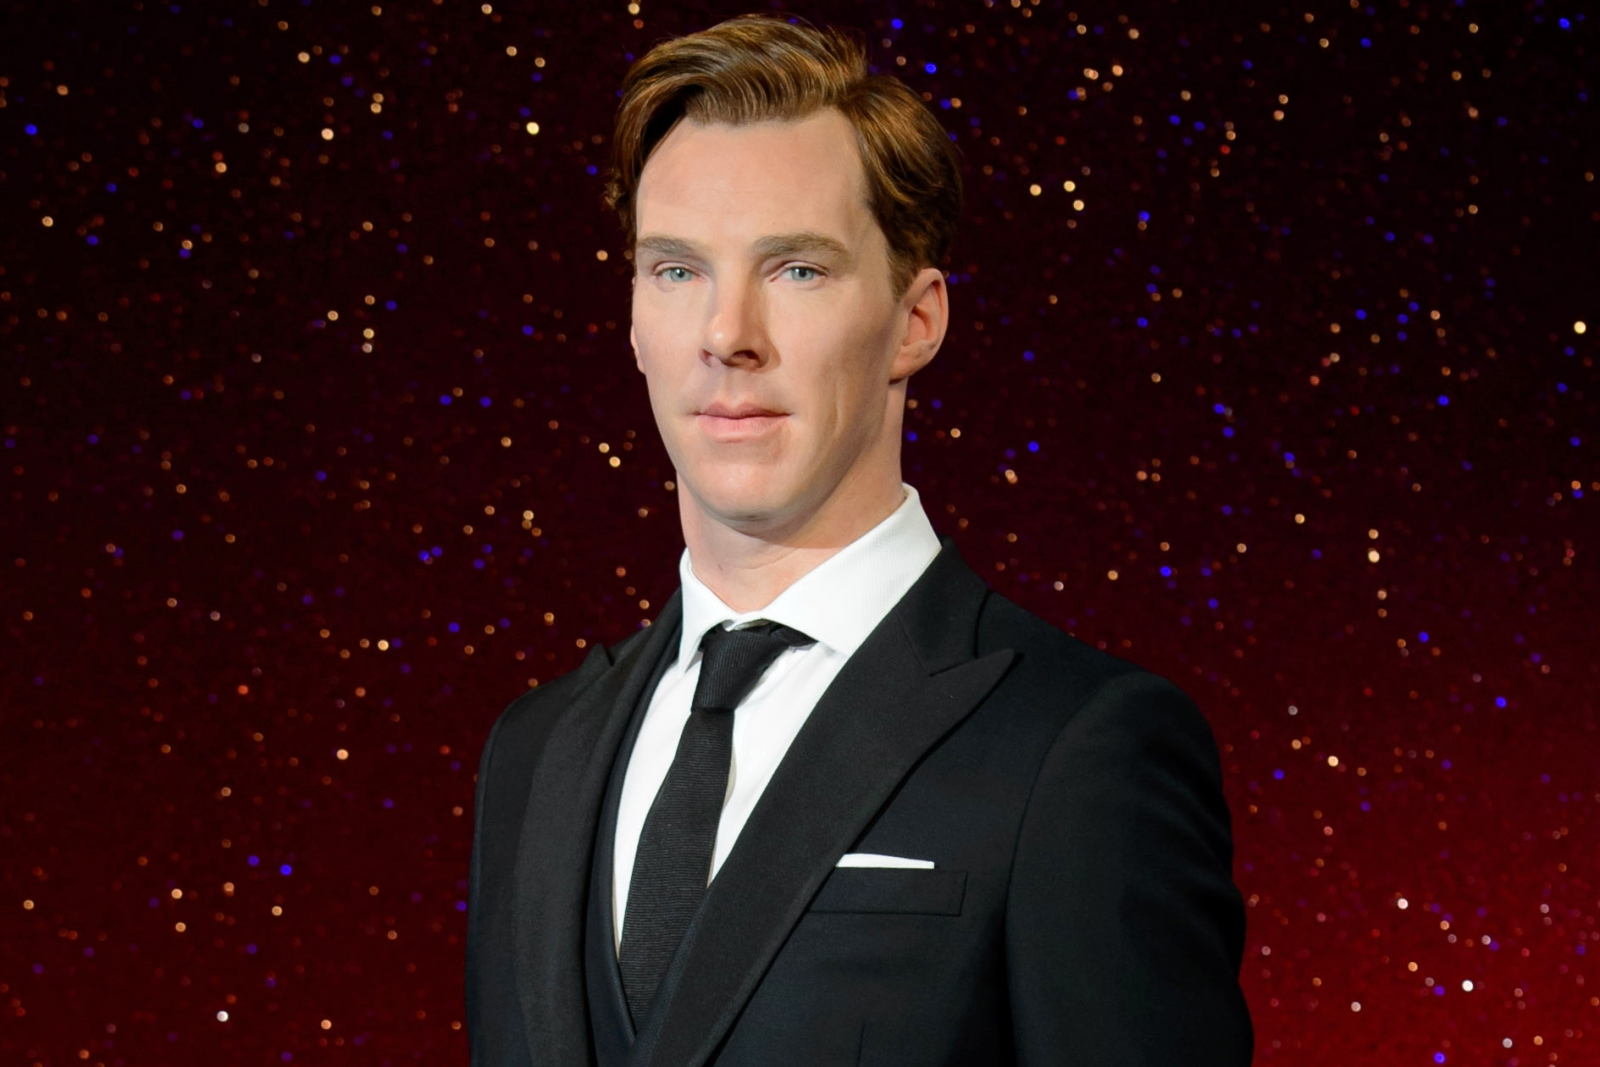 Cumberwax: The new Benedict Cumberbatch wax figure has been unveiled today by Madame Tussauds London